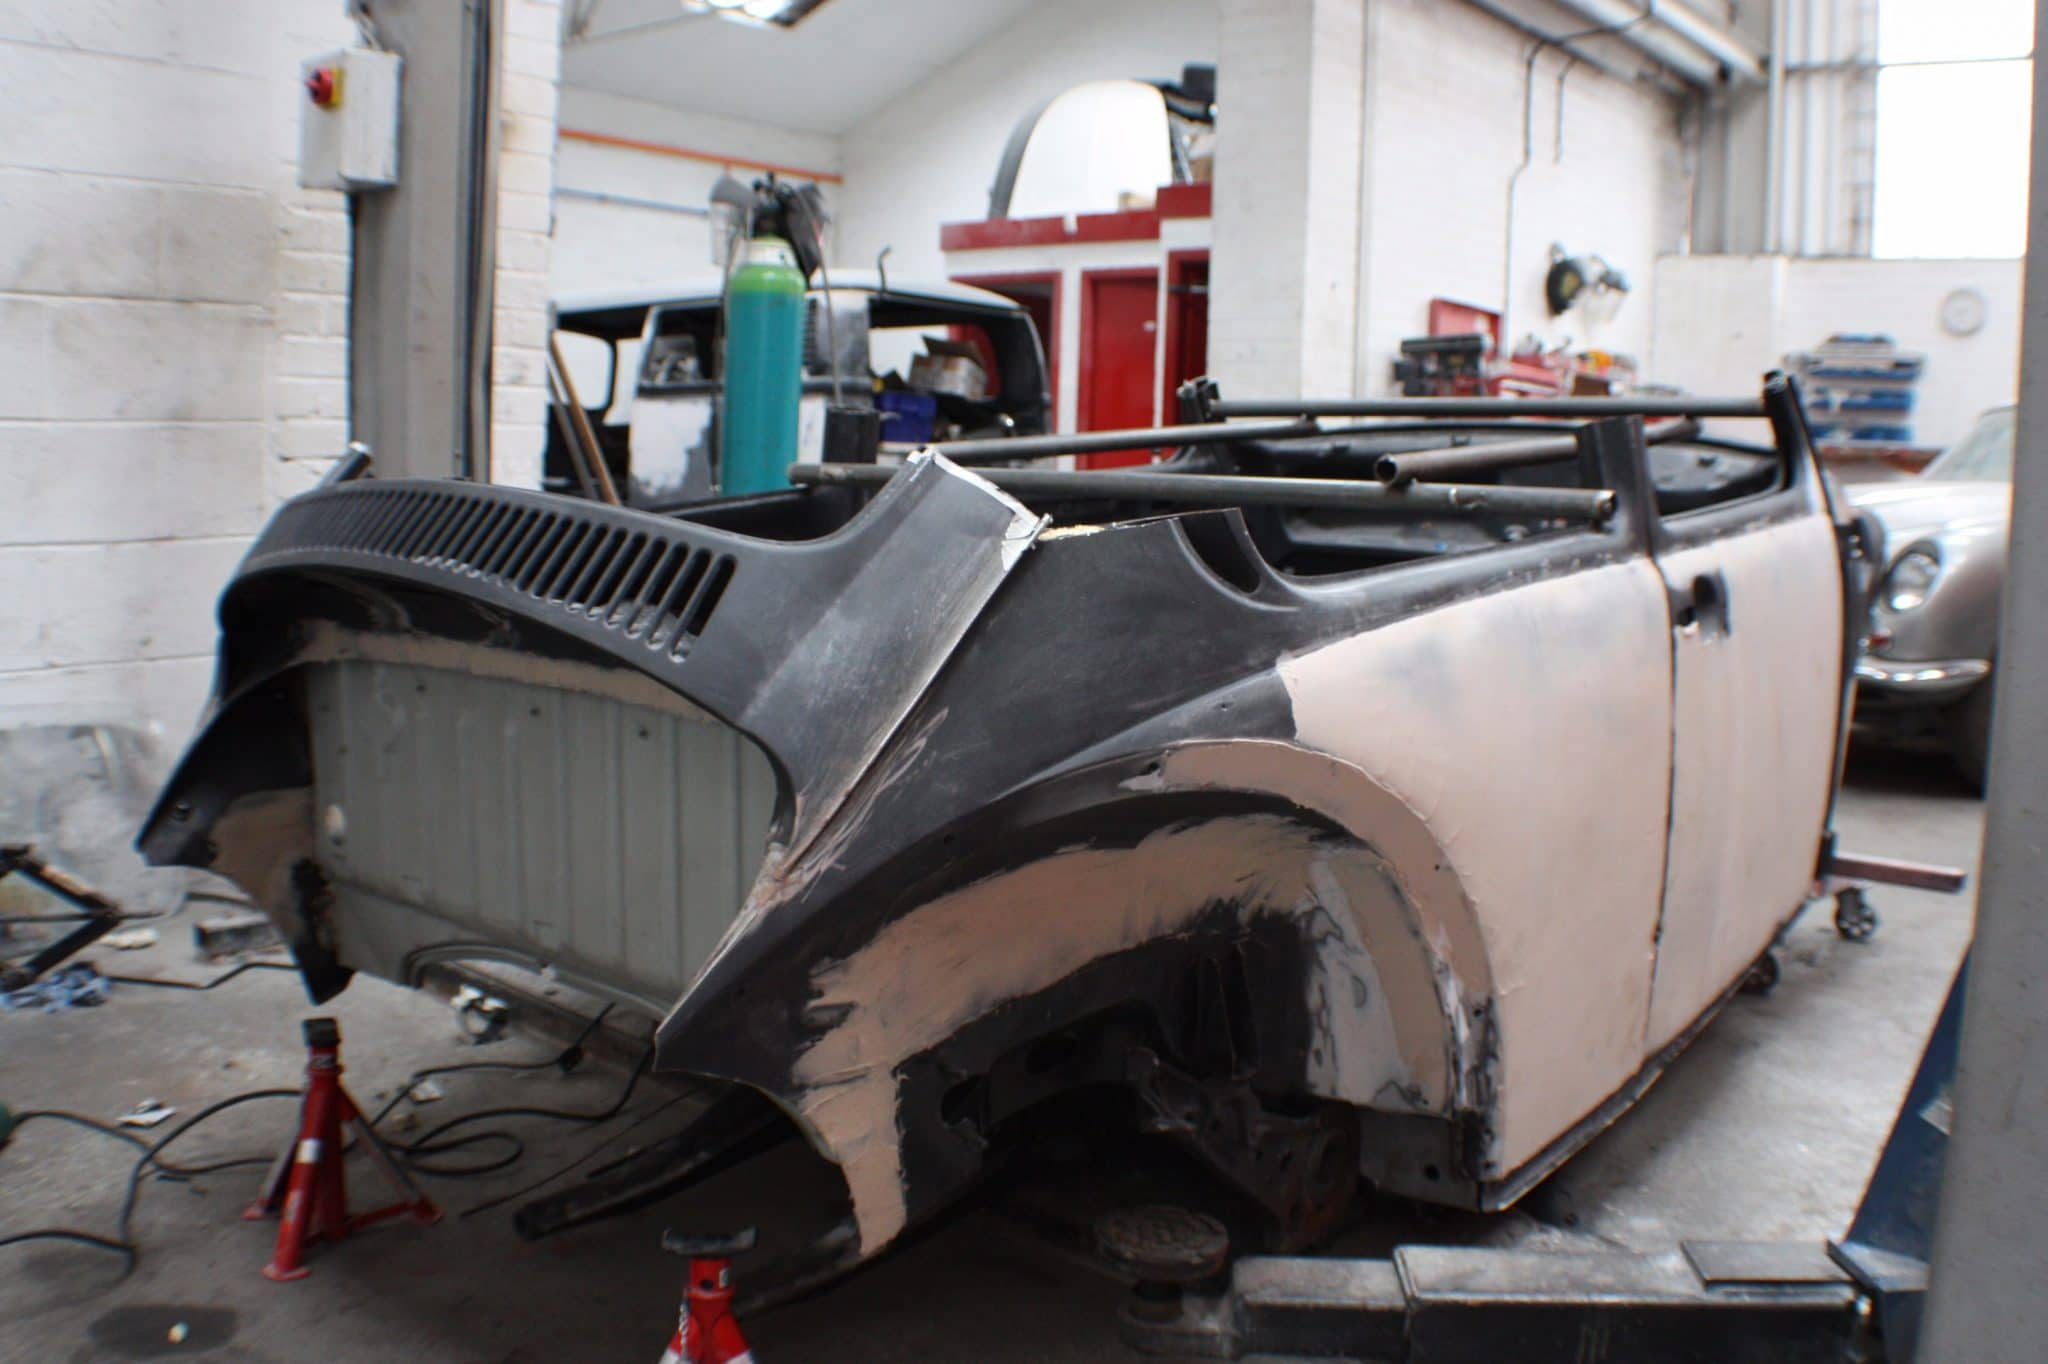 Baja Beetle stripped down - no roof